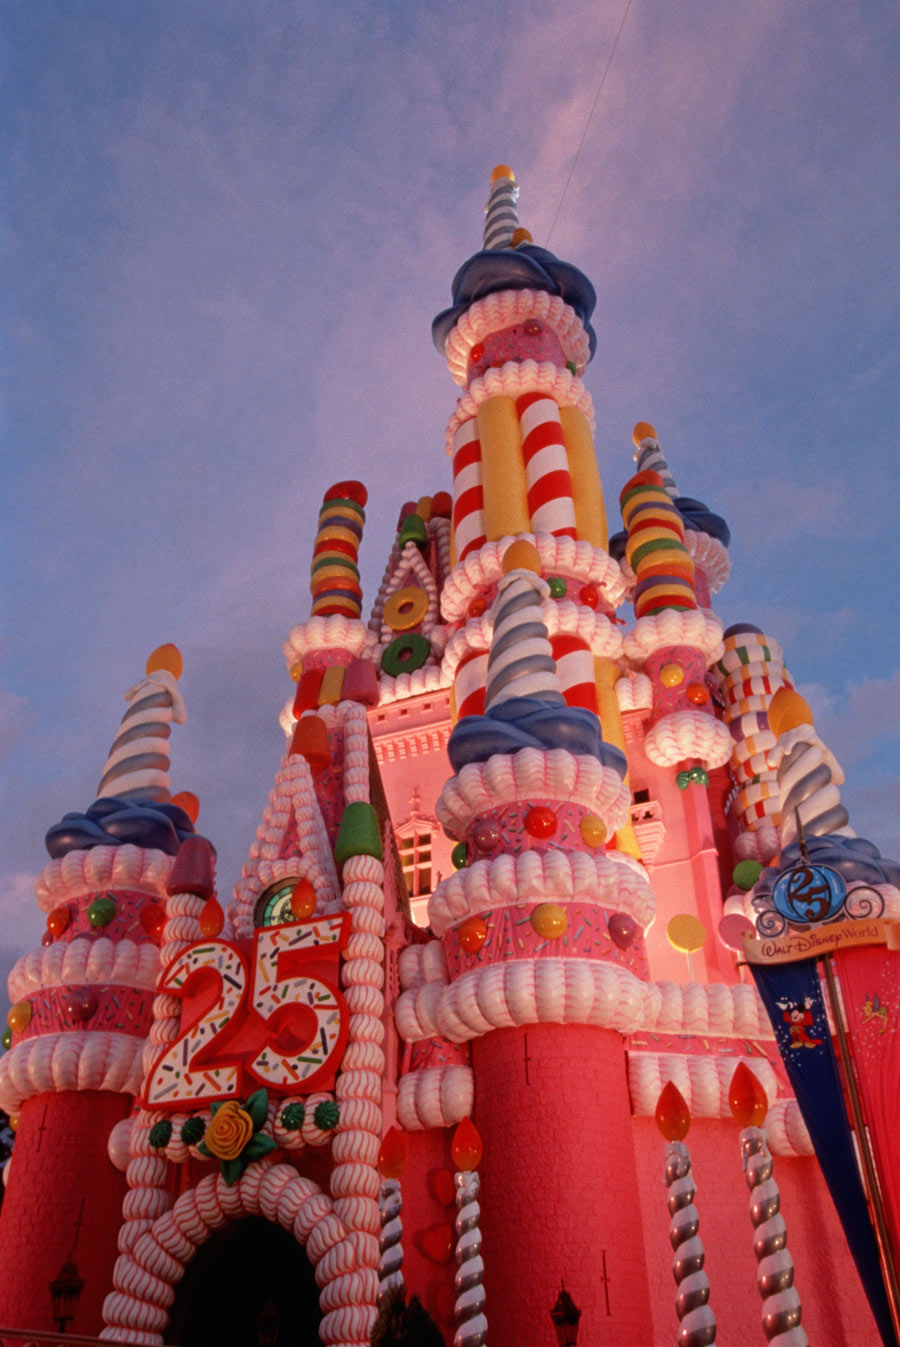 Birthday Cake Castle Magic Kingdom 25th Anniversary Walt Disney World 1996